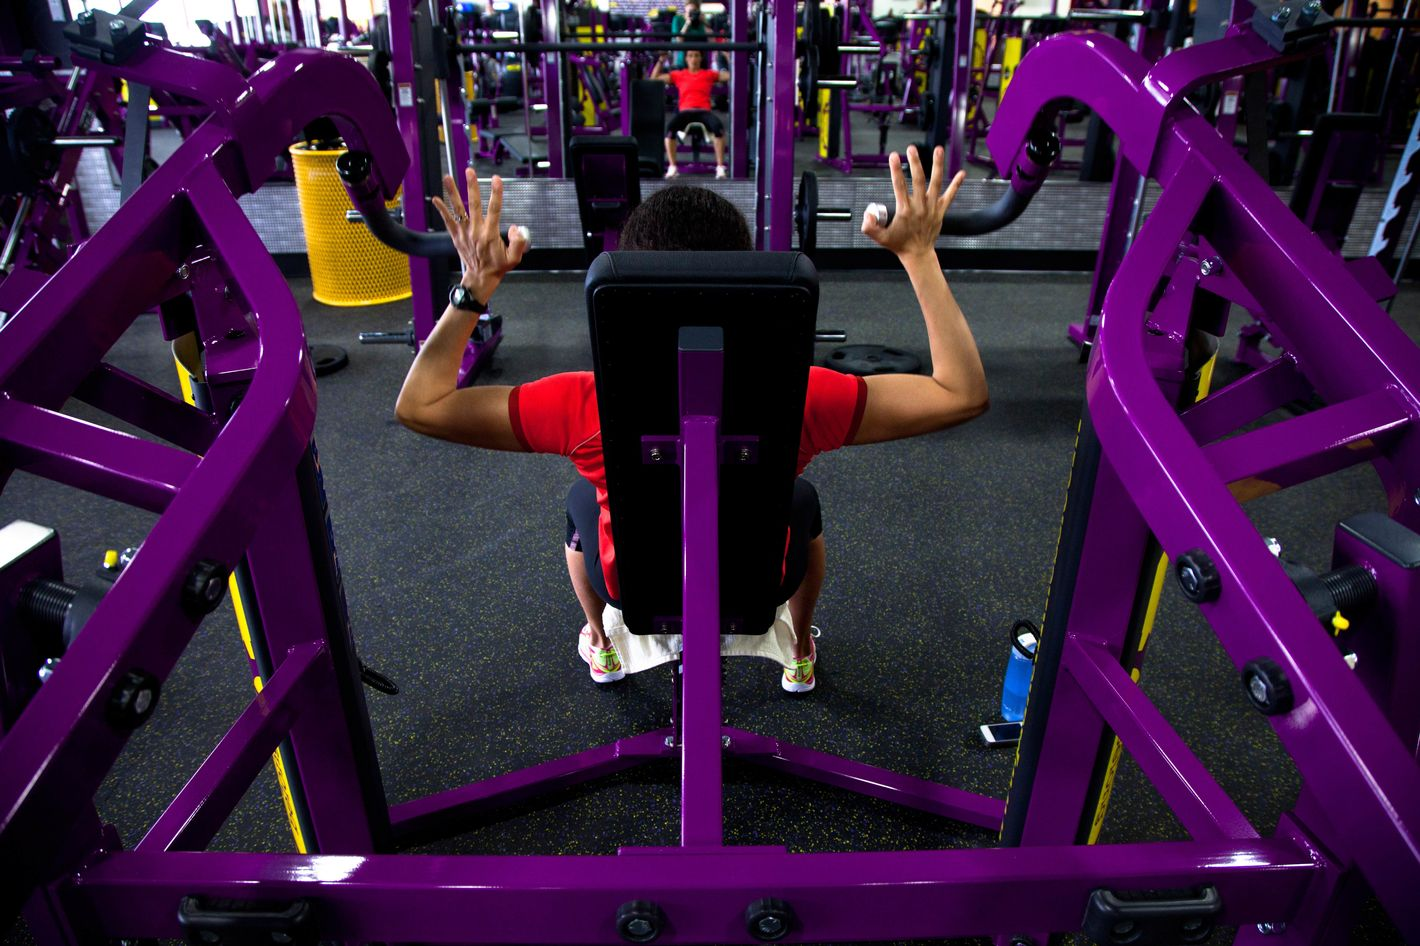 the rise of the $6,000-a-year (or $120-a-year) gym